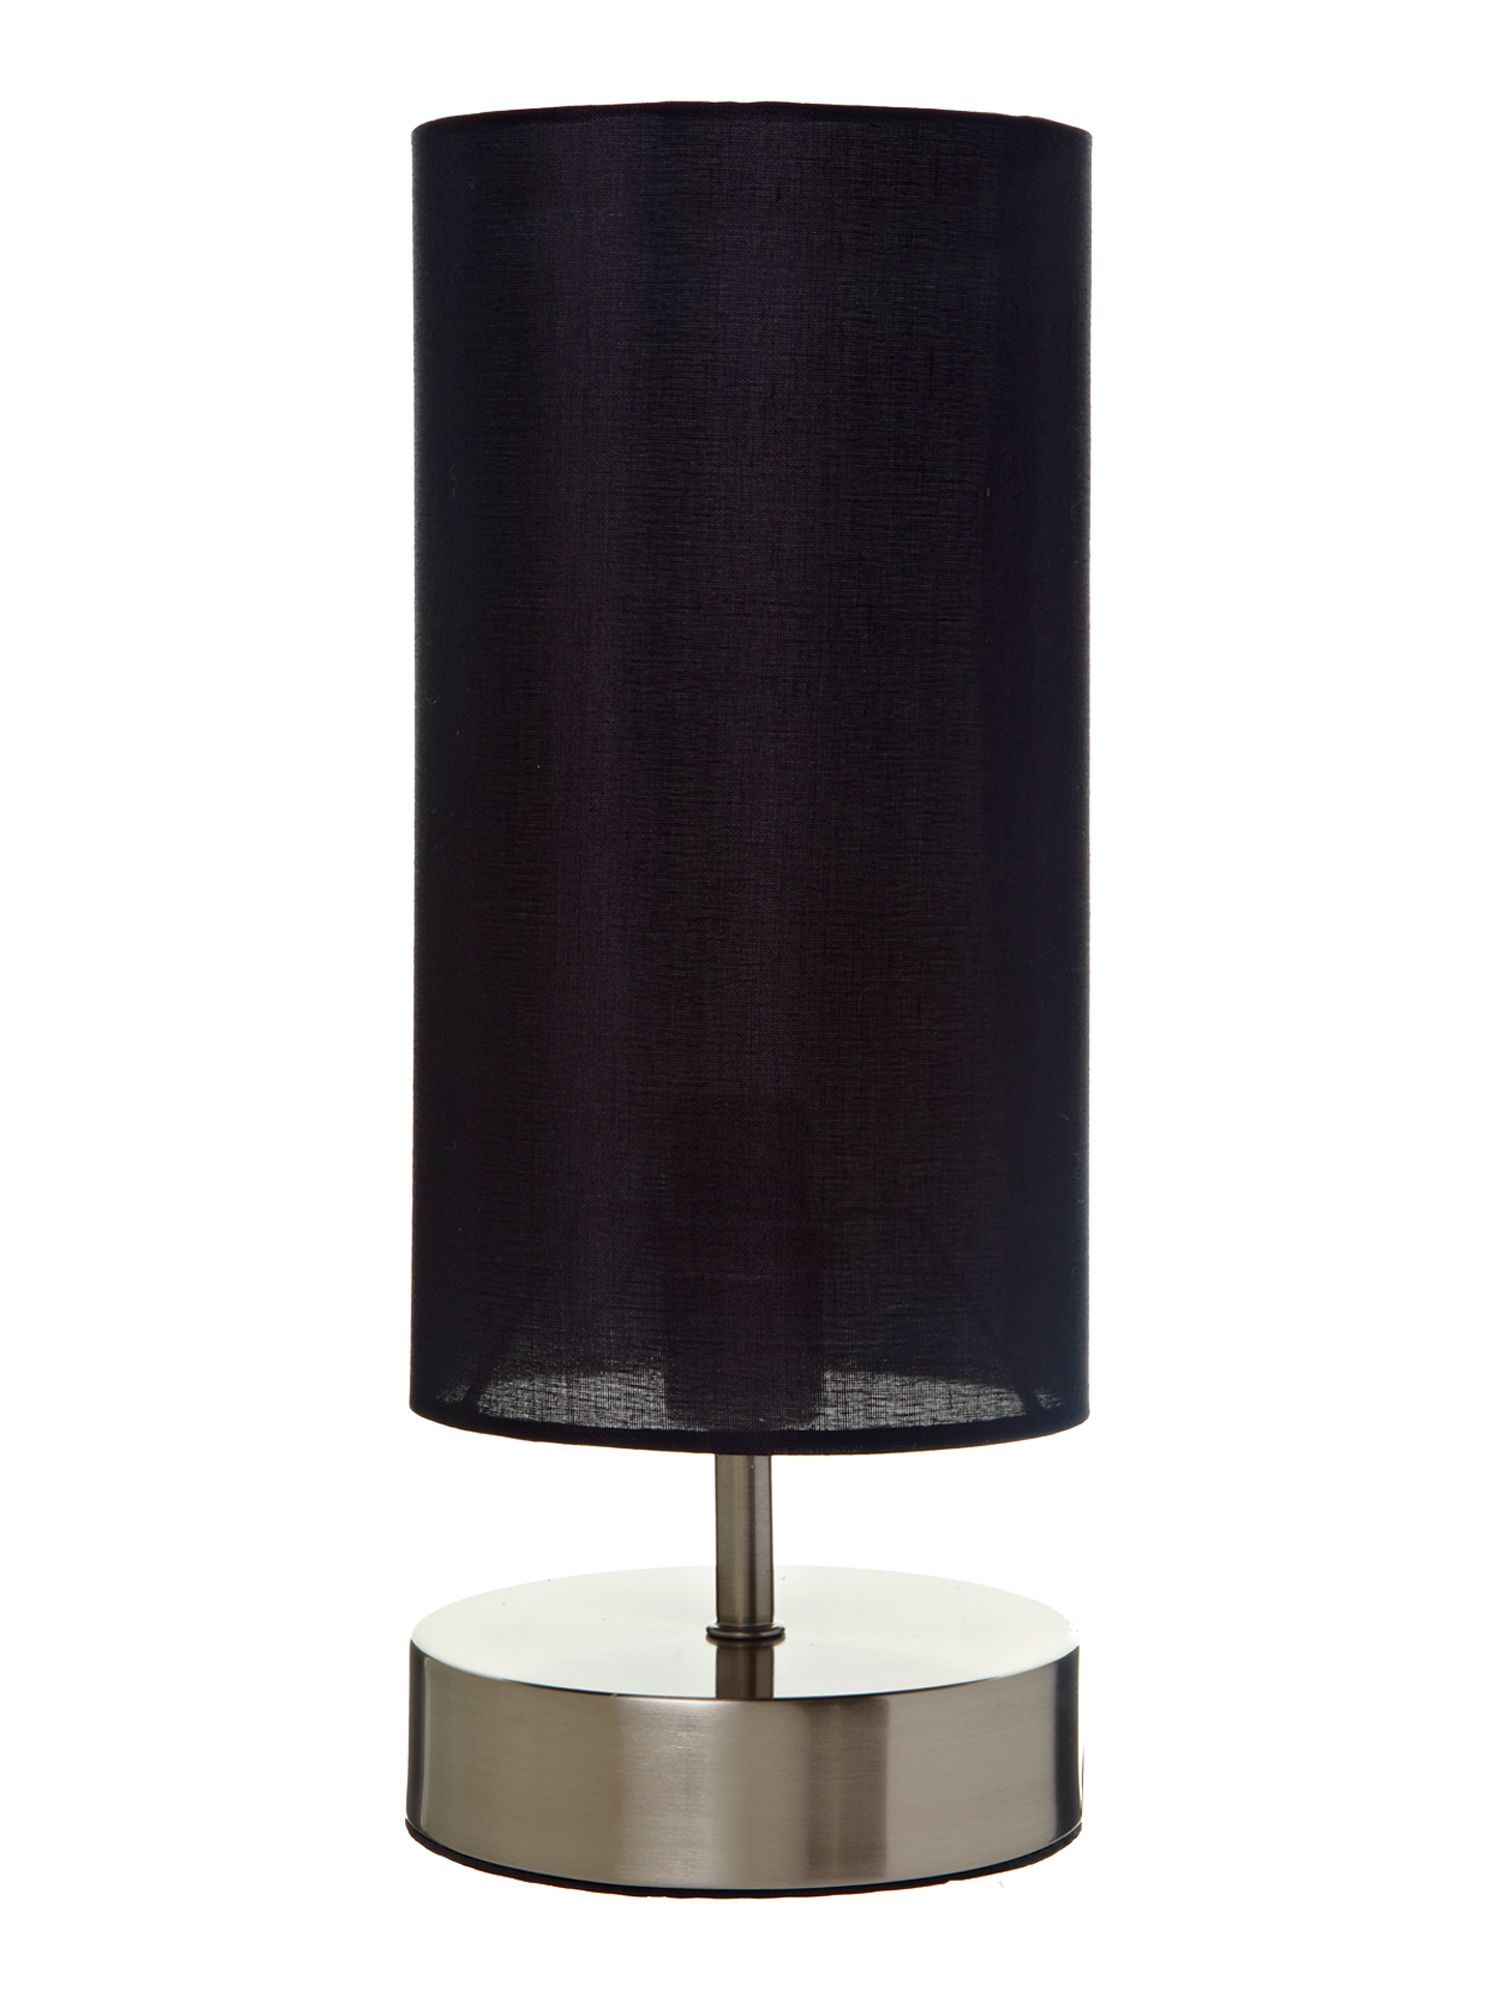 Hanna satin chrome touch lamp black shade